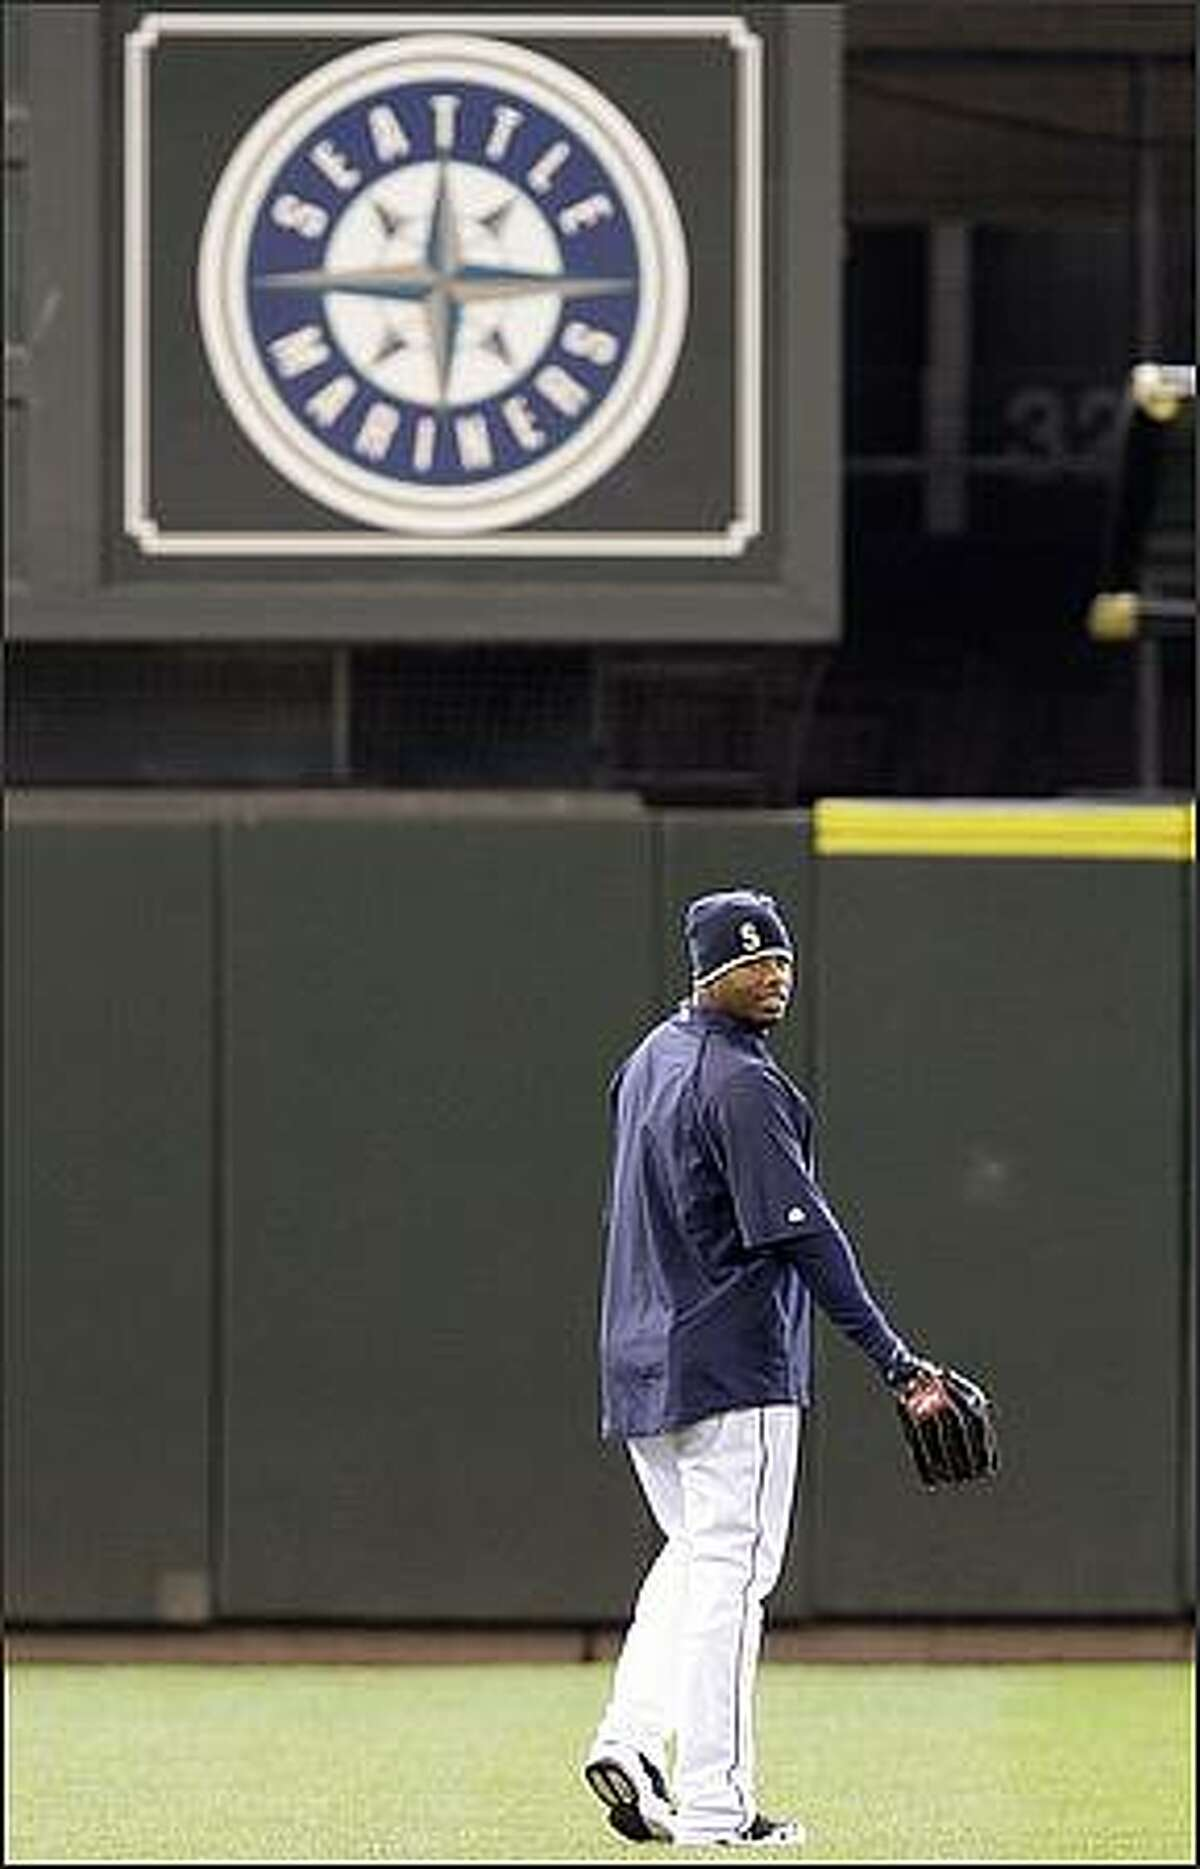 Seattle Mariners' Ken Griffey Jr. heads to the outfield during a baseball workout Monday, April 13, 2009, at the the team's ballpark in Seattle. The Mariners open their home season Tuesday against the Los Angeles Angels. The game will be the Griffey's first home game playing for the Mariners in almost 10 years. (AP Photo/Elaine Thompson)